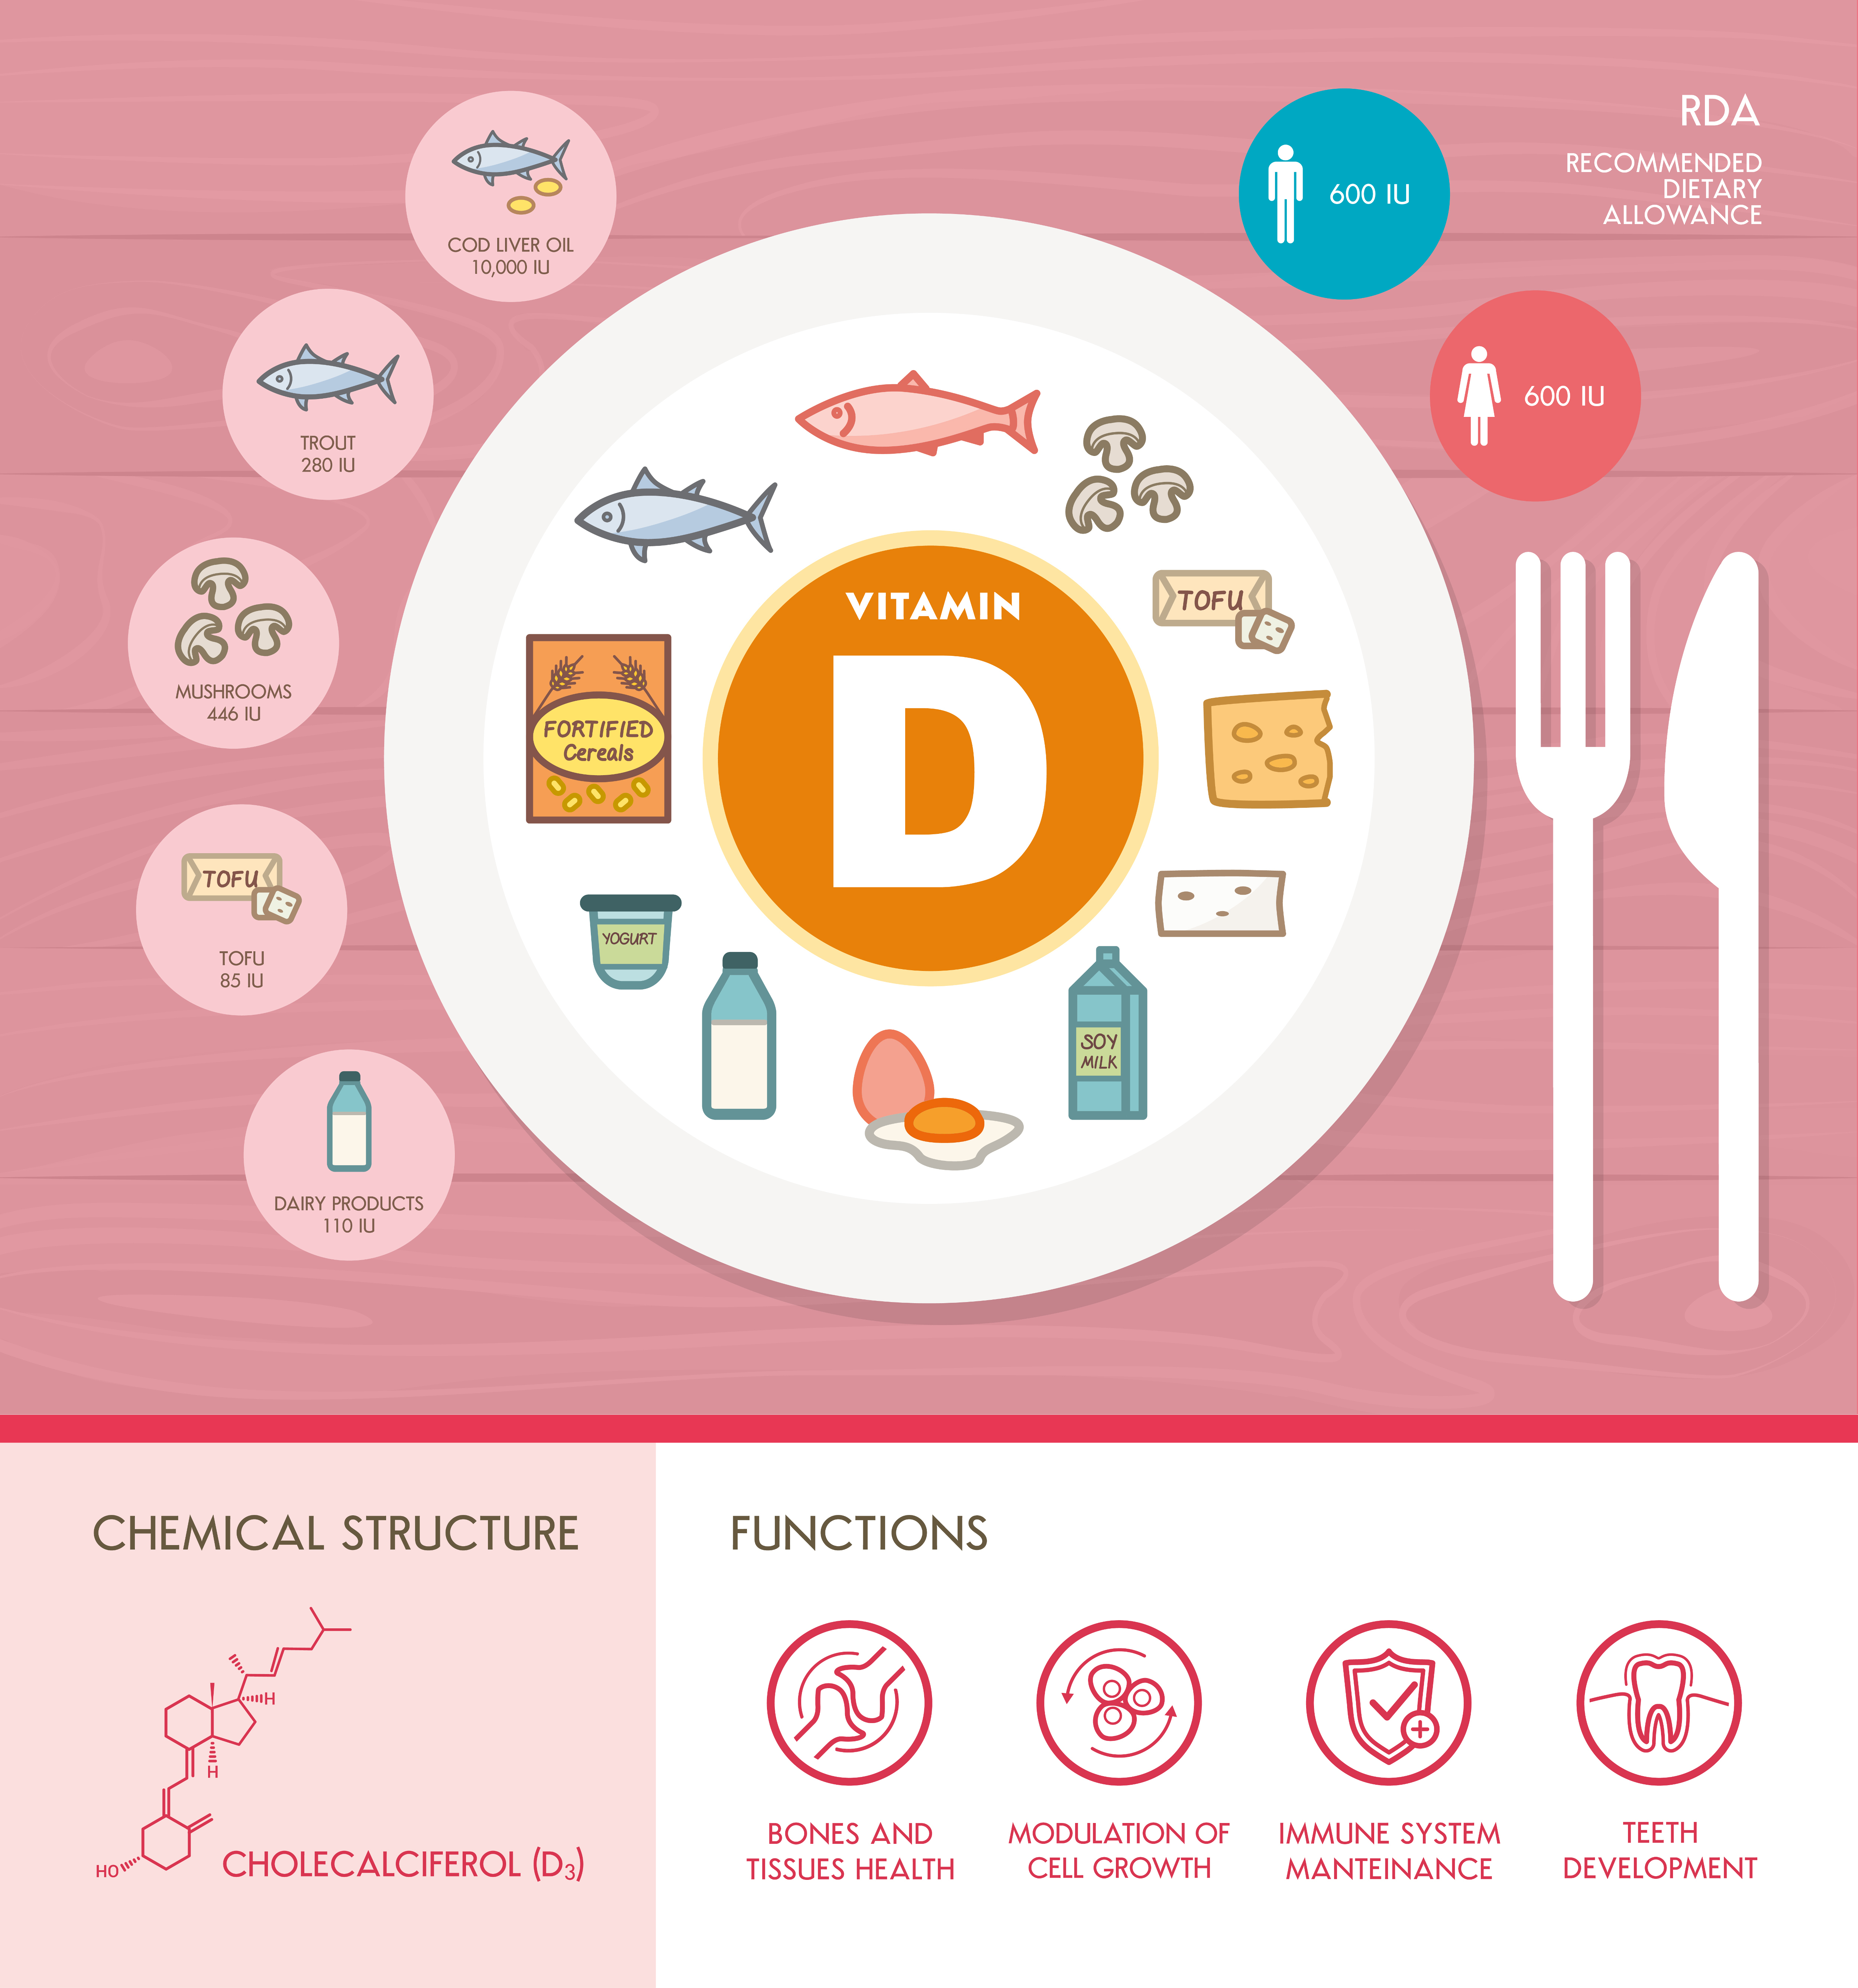 Vitamin D - sources, functions and RDA